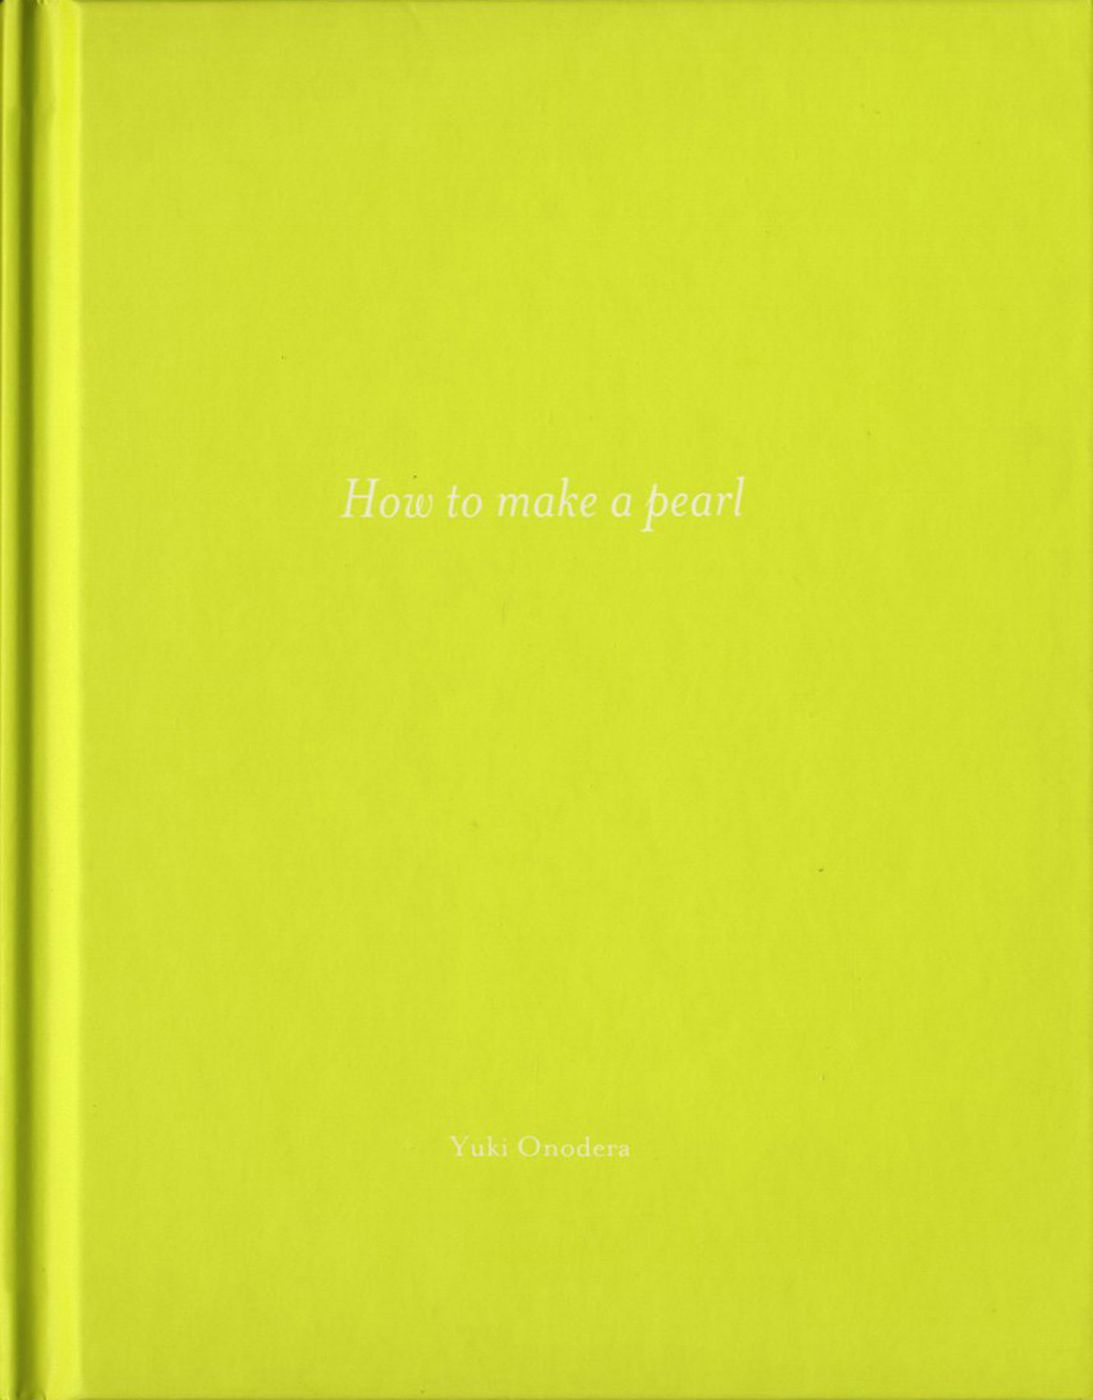 Yuki Onodera: How to Make a Pearl (One Picture Book #11), Limited Edition (with Print)